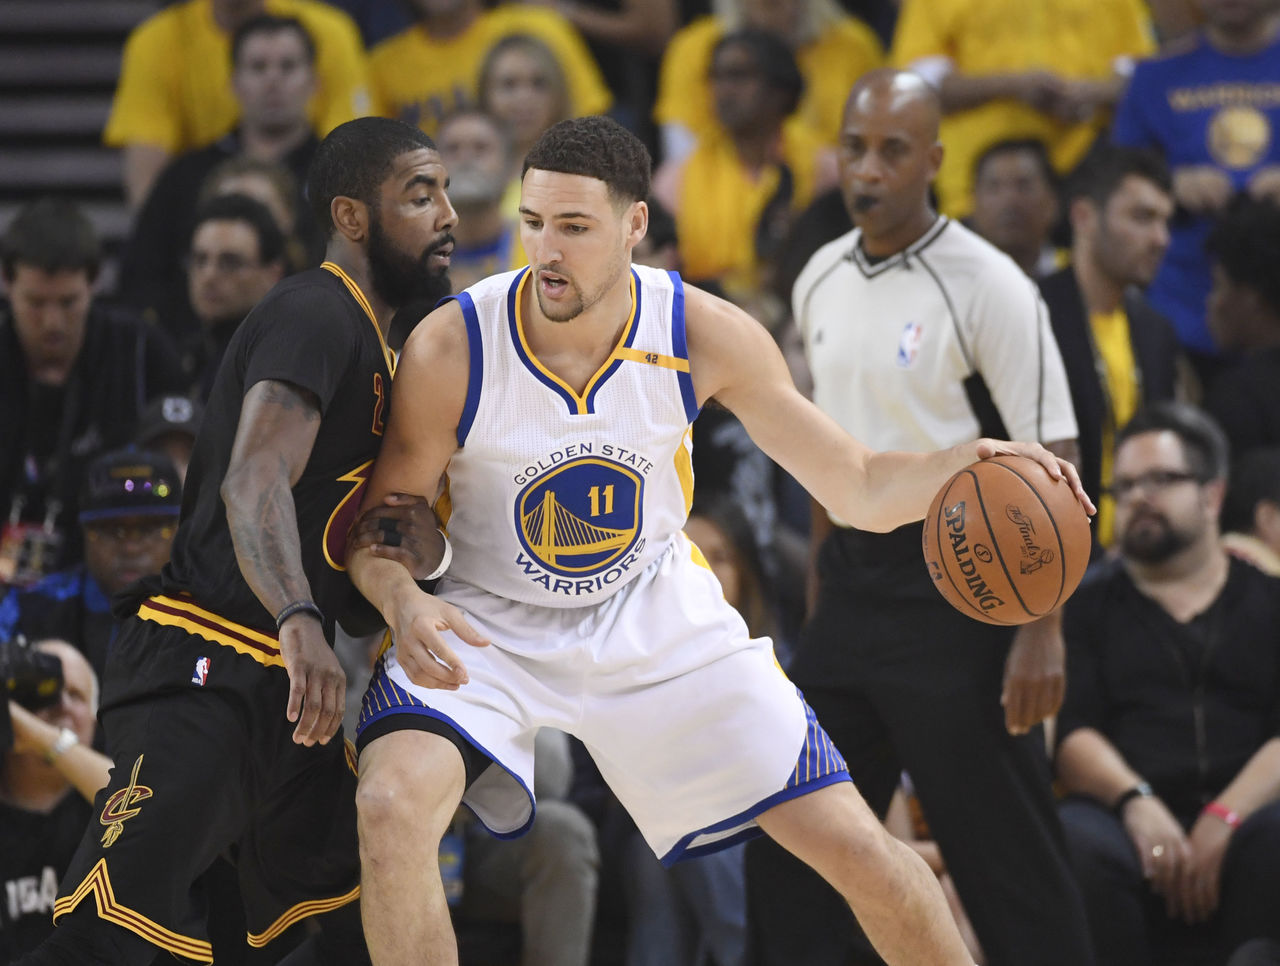 Cropped 2017 06 13t013456z 1967277508 nocid rtrmadp 3 nba finals cleveland cavaliers at golden state warriors